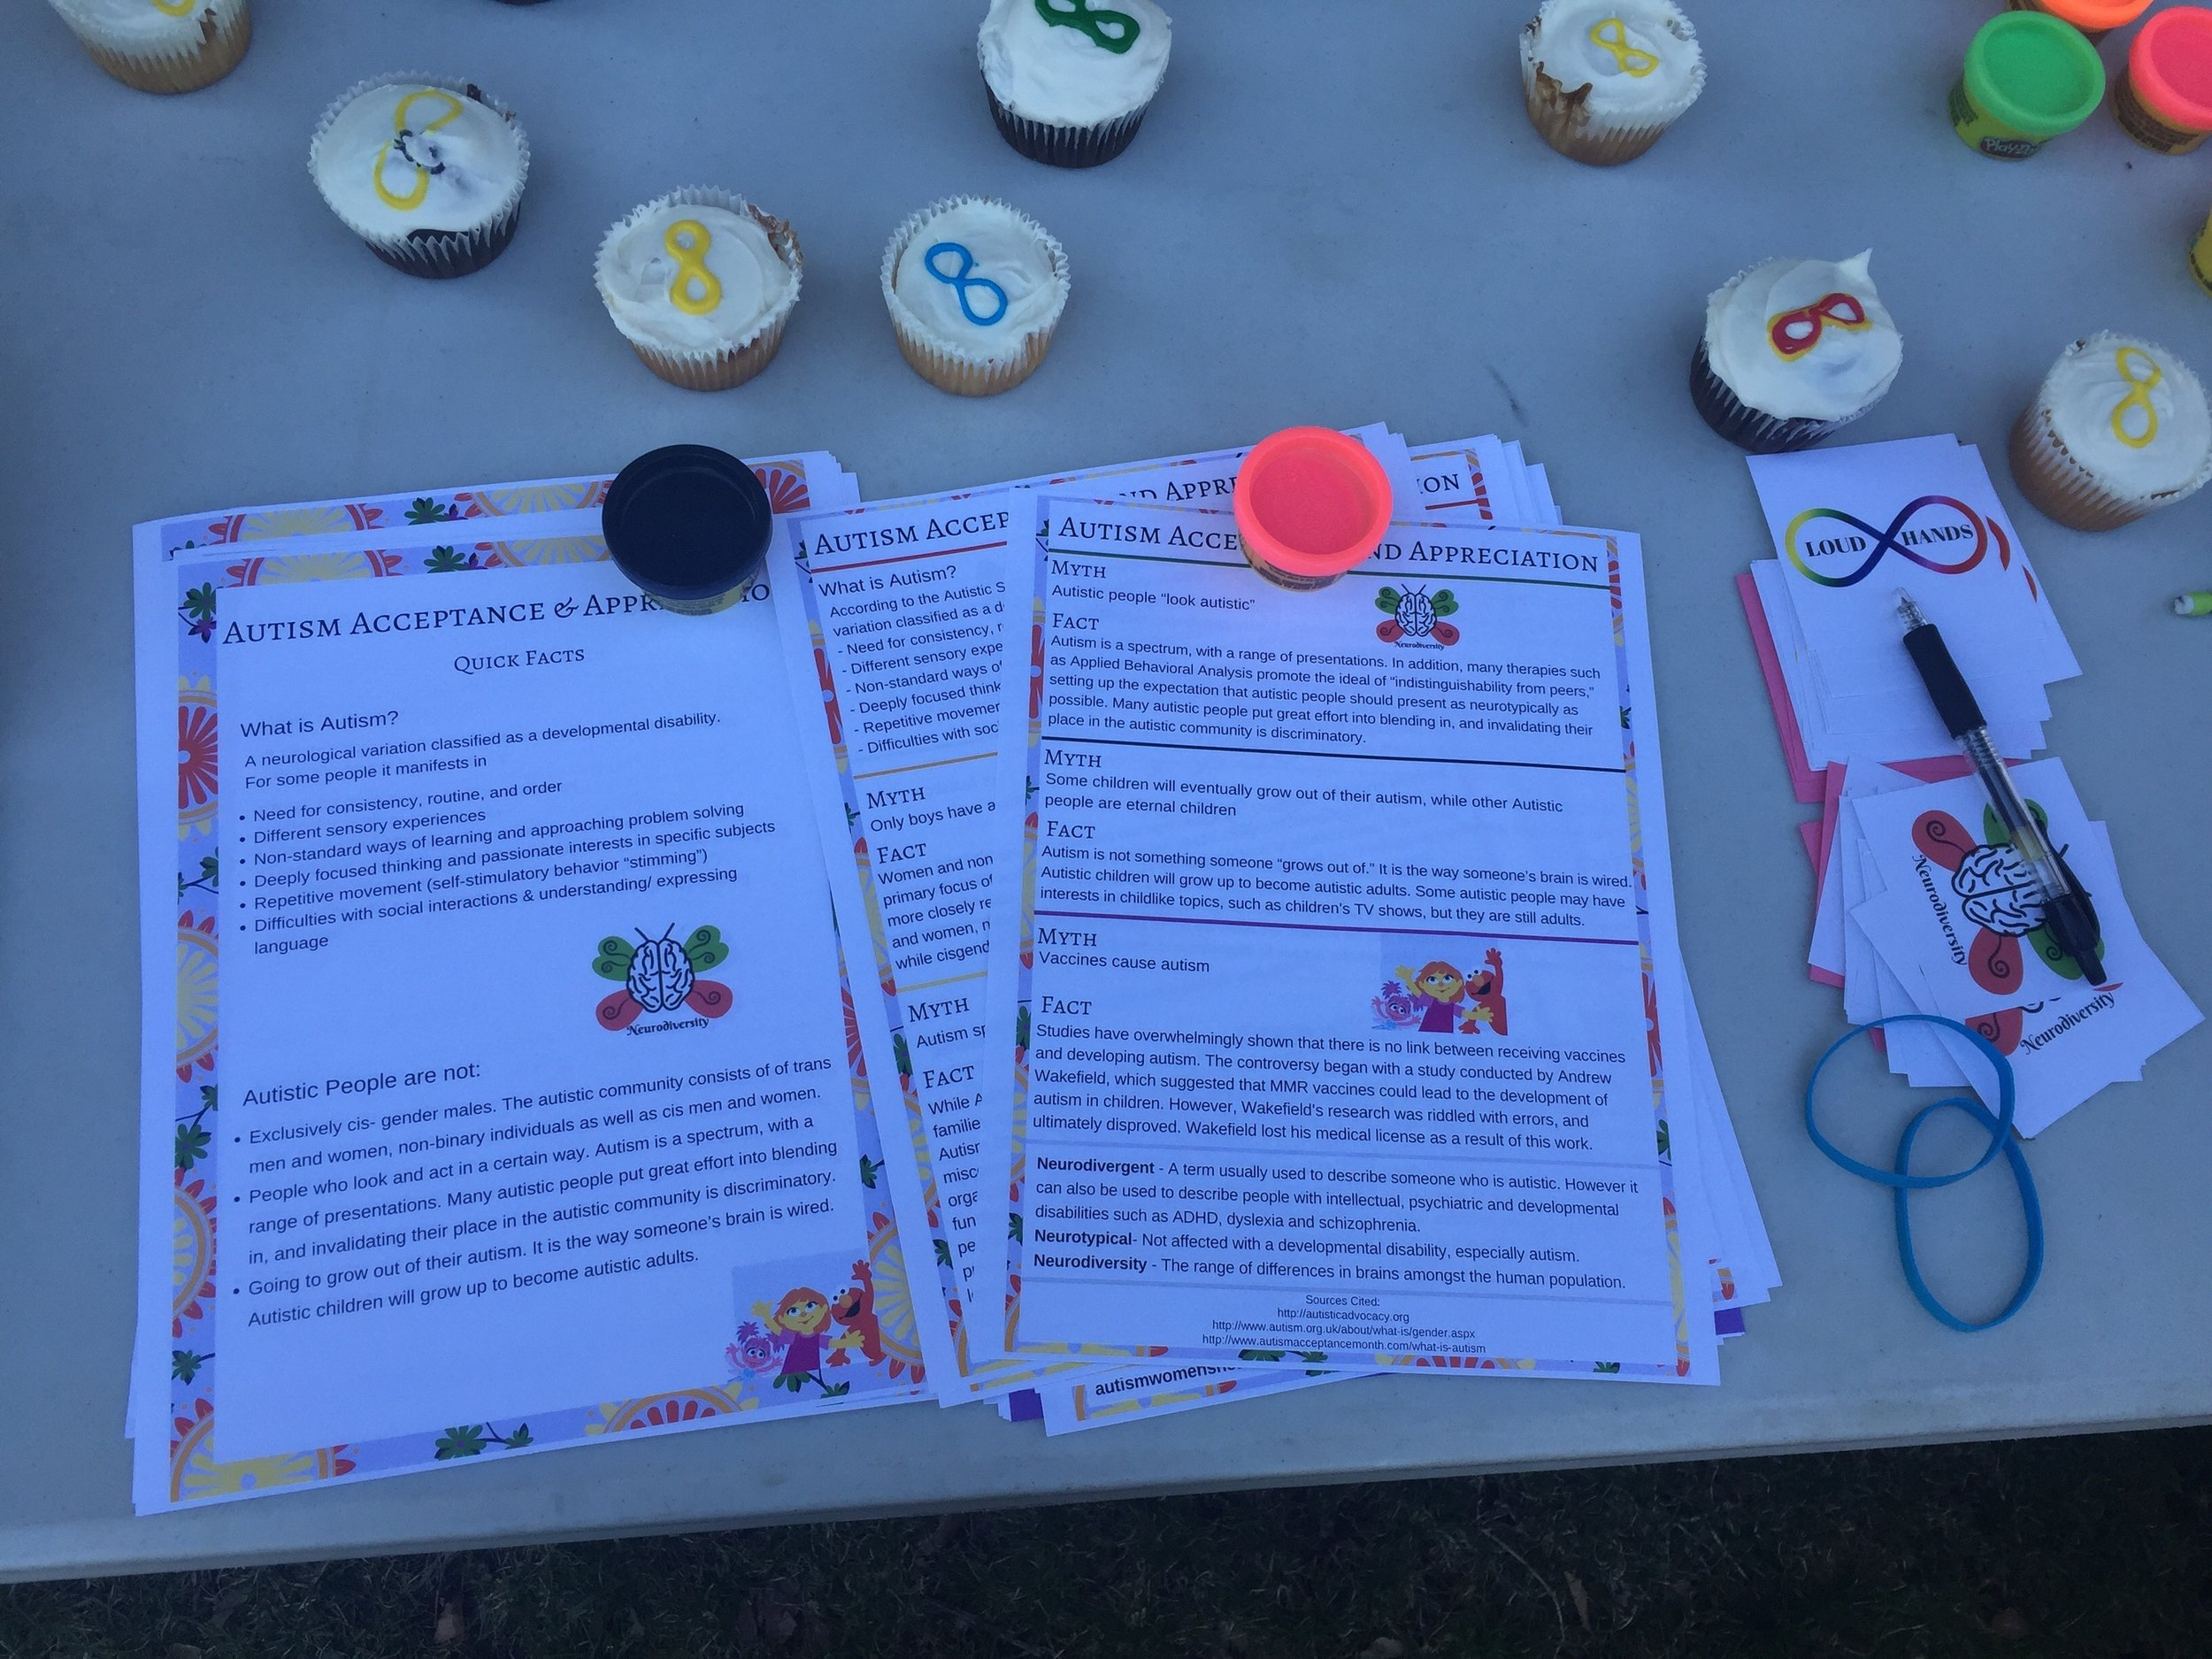 Image description:: Close up view of autism acceptance flyers, cupcakes with colorful infinity symbols on white frosting and mini tins of Play-do